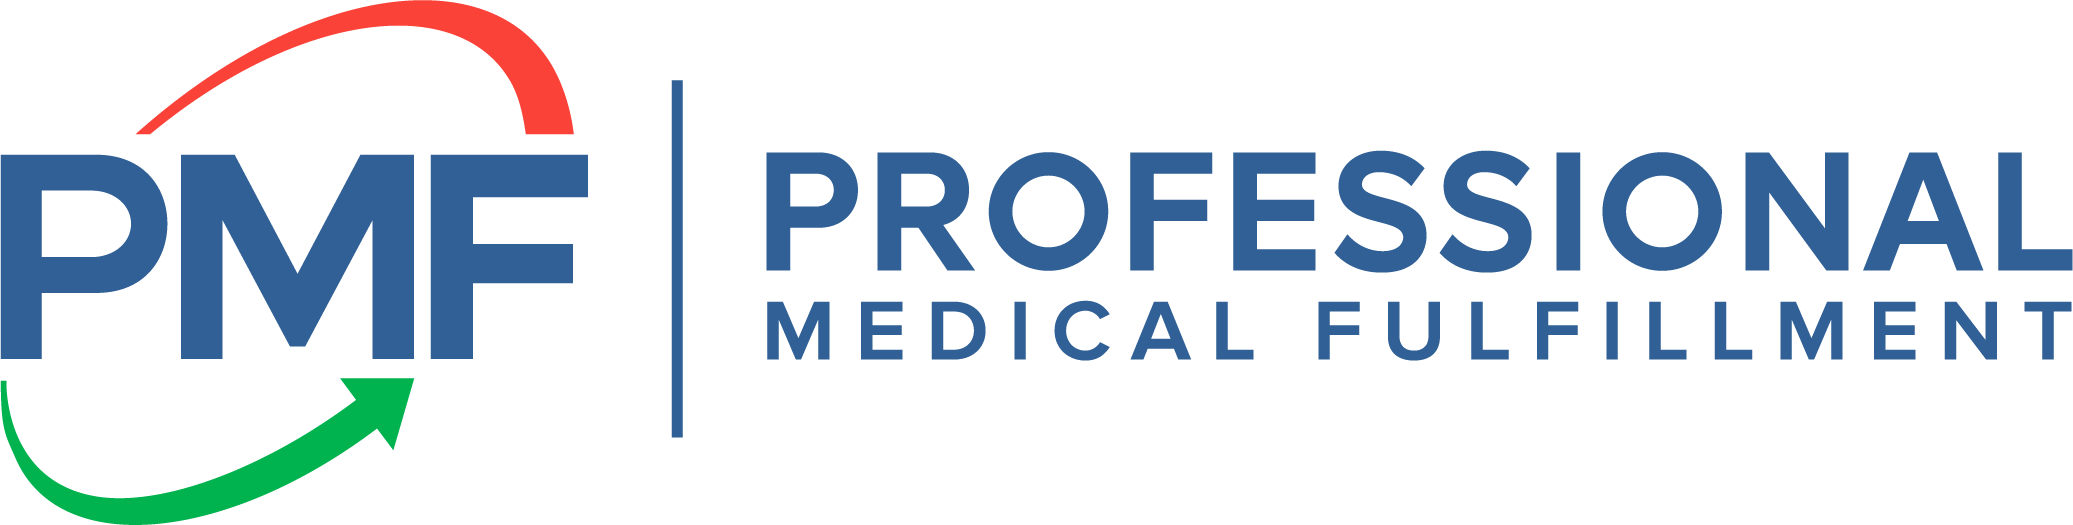 Professional Medical Fulfillment logo